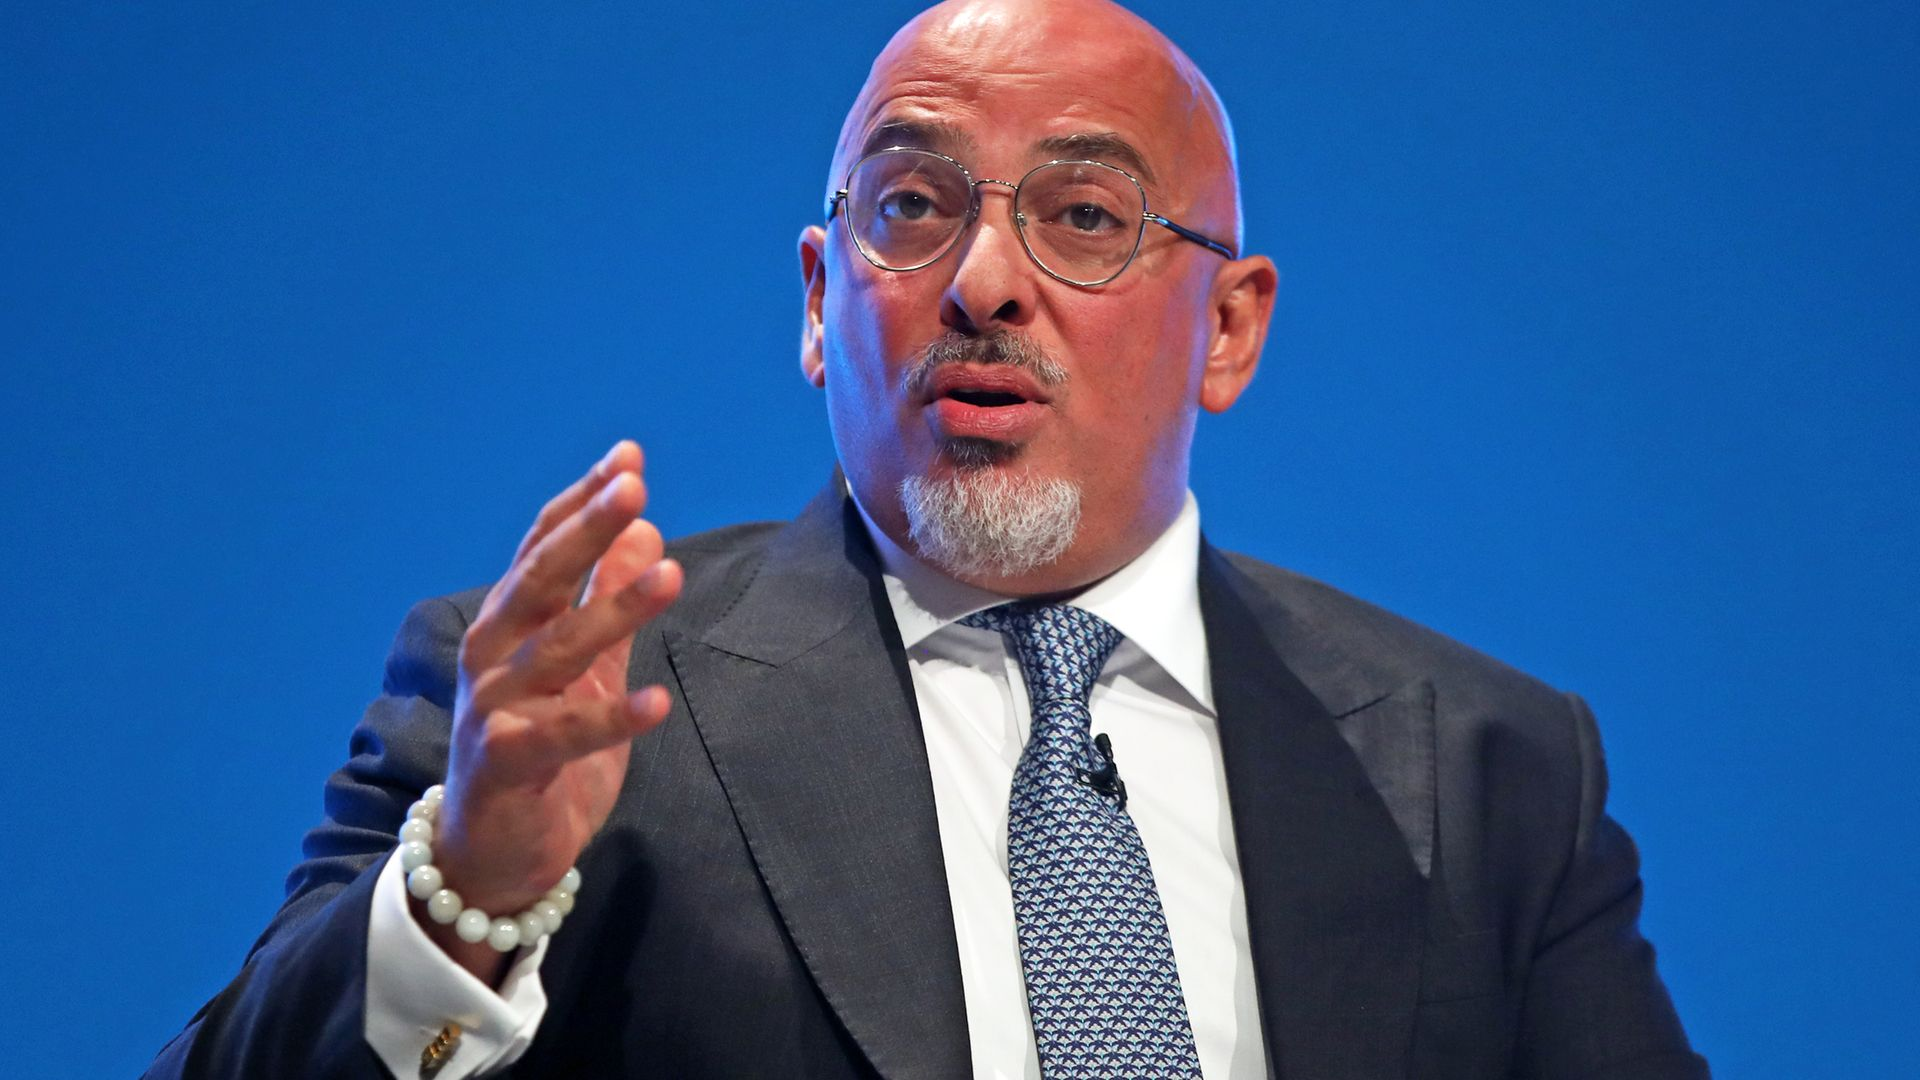 Nadhim Zahawi who has been appointed as a health minister responsible for the deployment of the coronavirus vaccine - Credit: PA